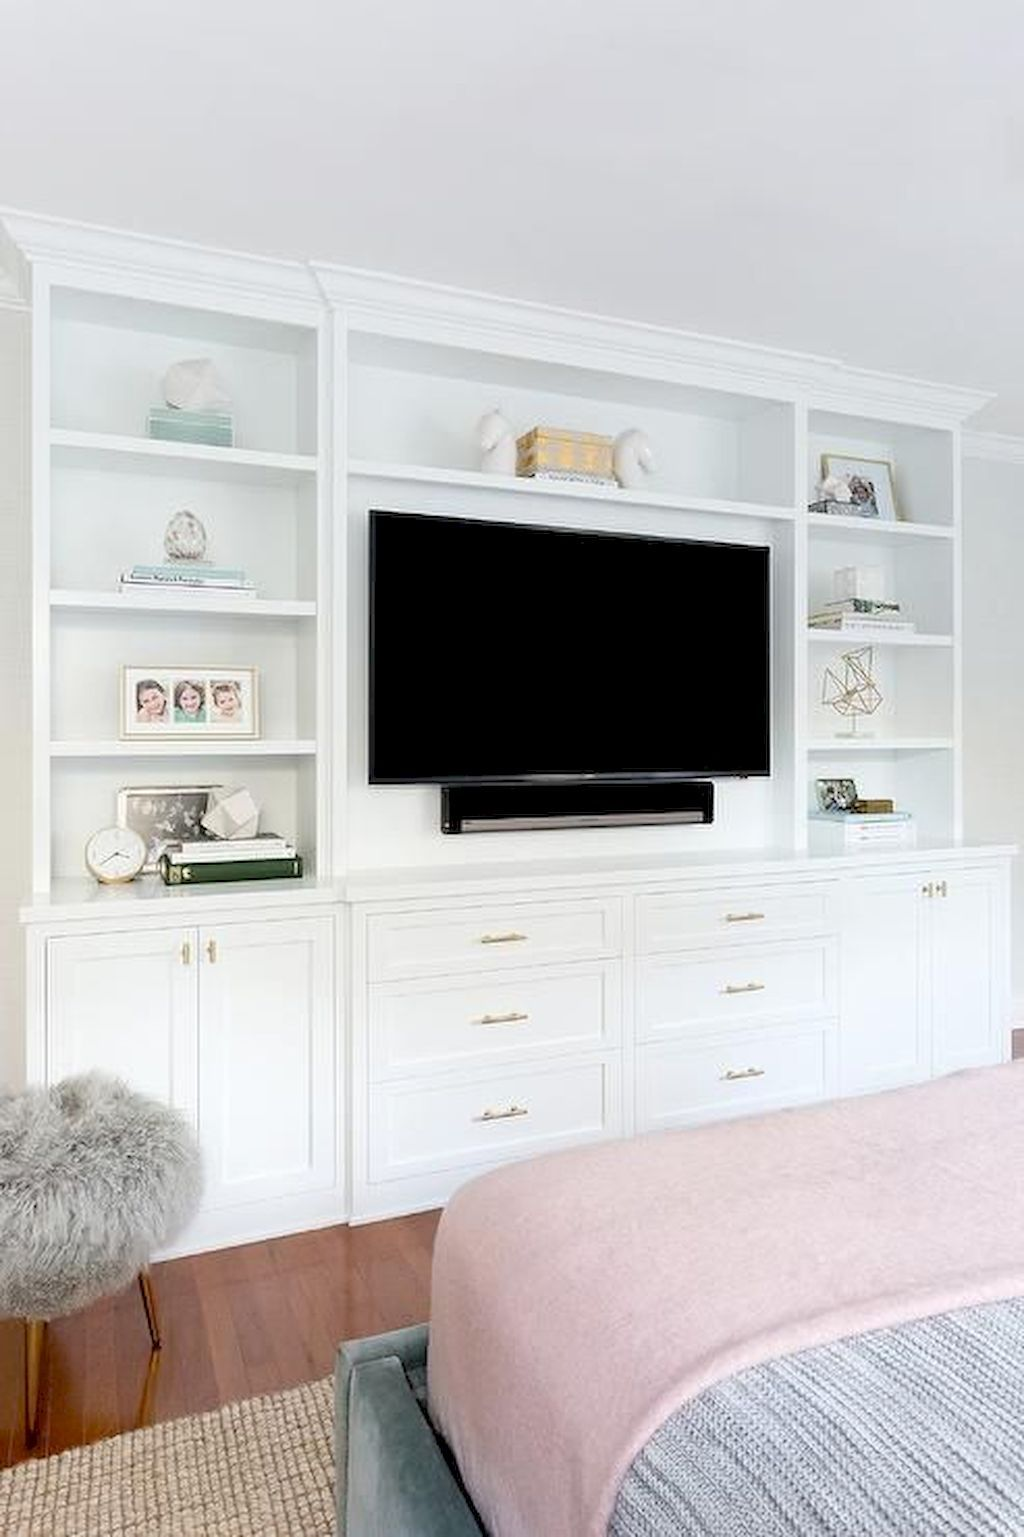 Smart Ideas For Amazing Bedroom Storage Home To Z Master Bedroom Storage Ideas Bedroom Built Ins Bedroom Wall Units